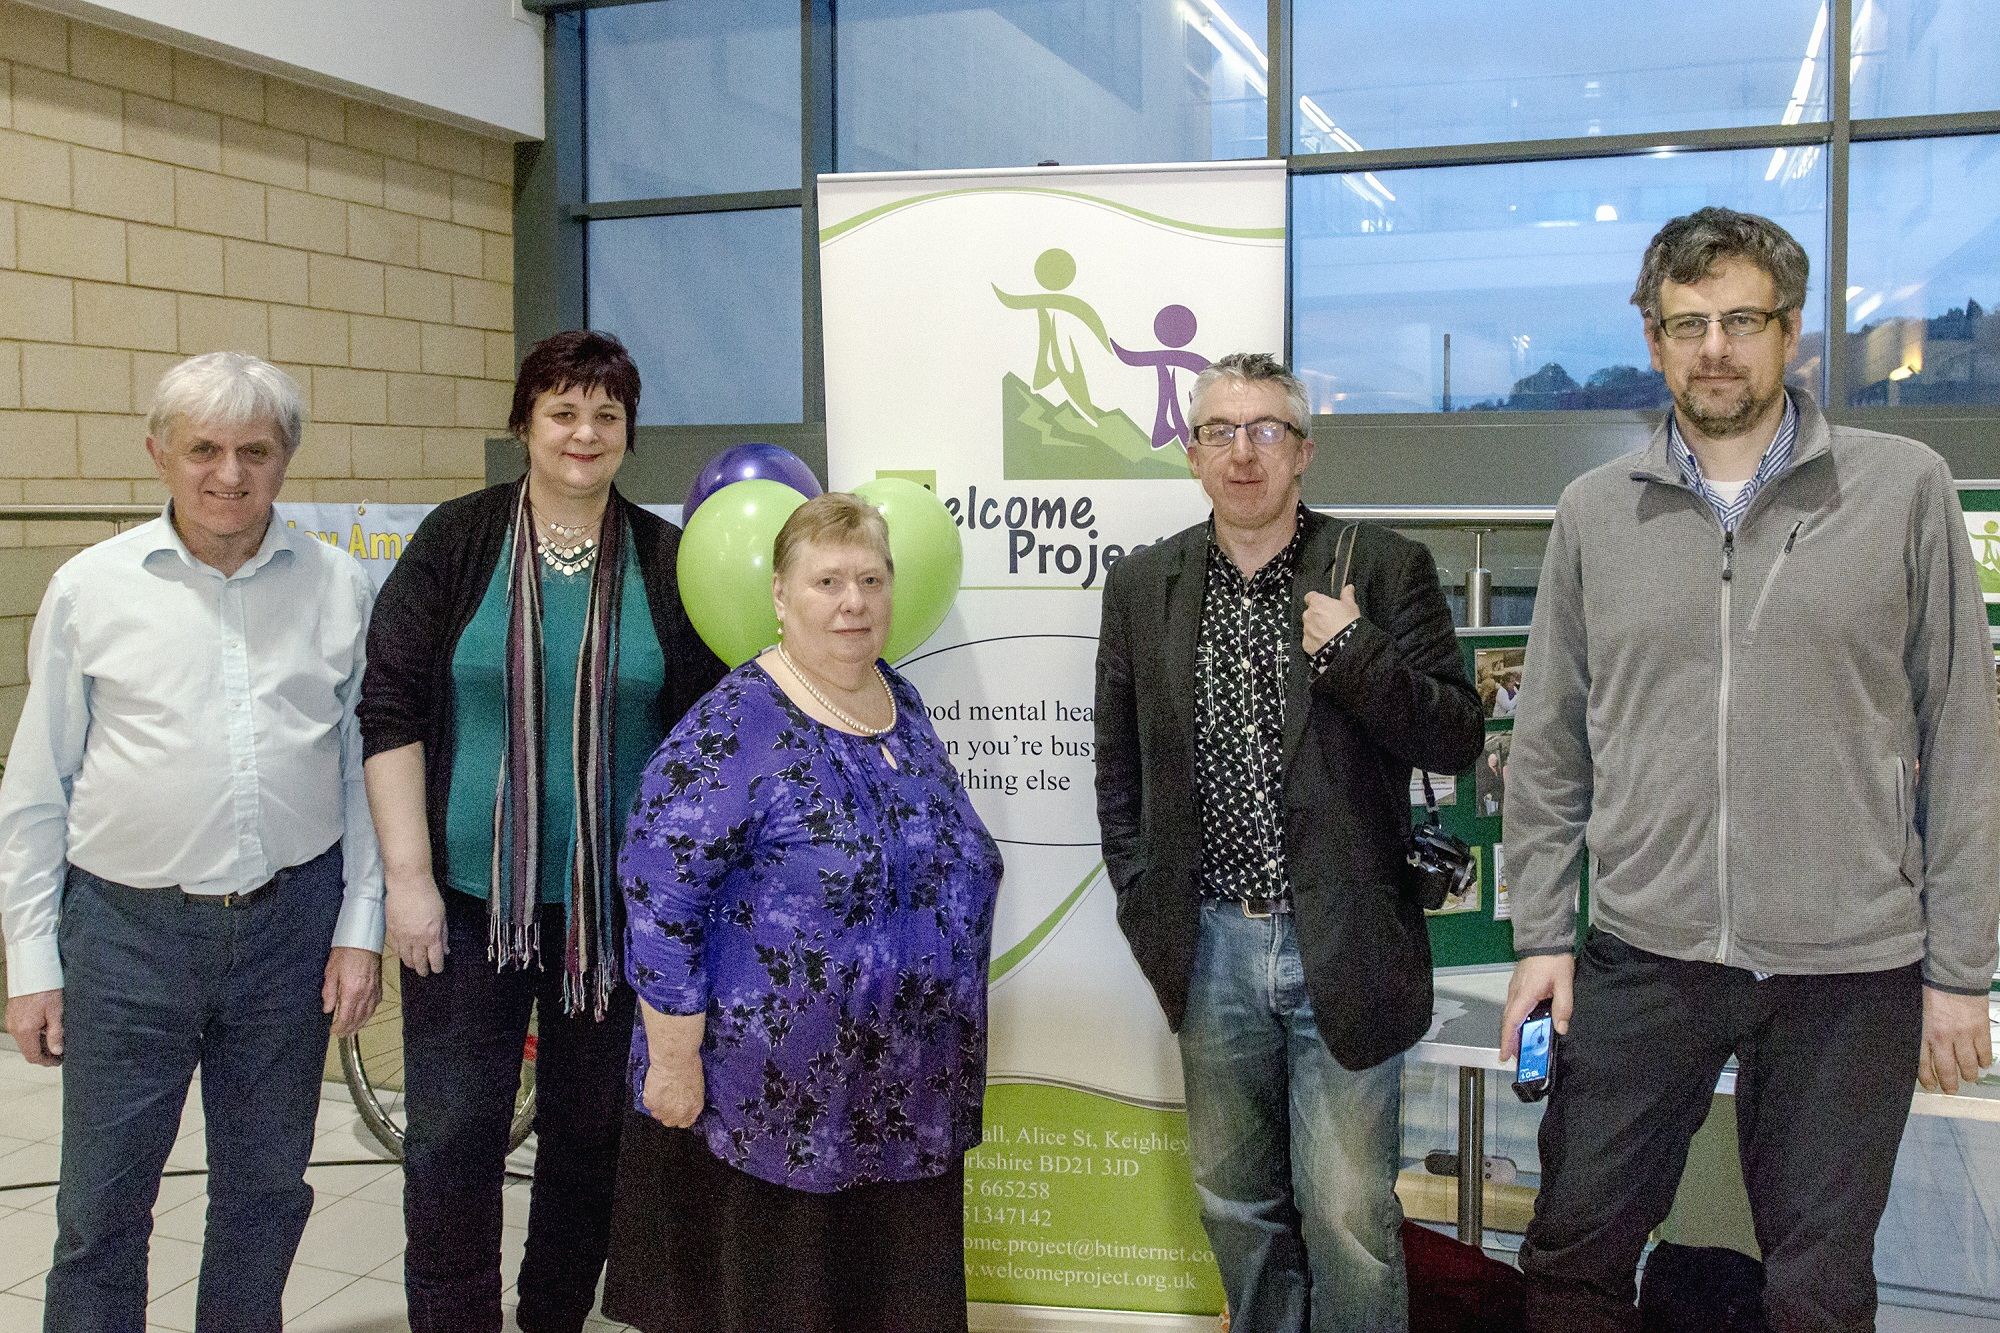 Welcome Project members with representatives of groups that funded the Star Centre event (from left) Geoff Grange, Shona Grange, Joyce Baruch, Andy Sheppard and Mick Charlton